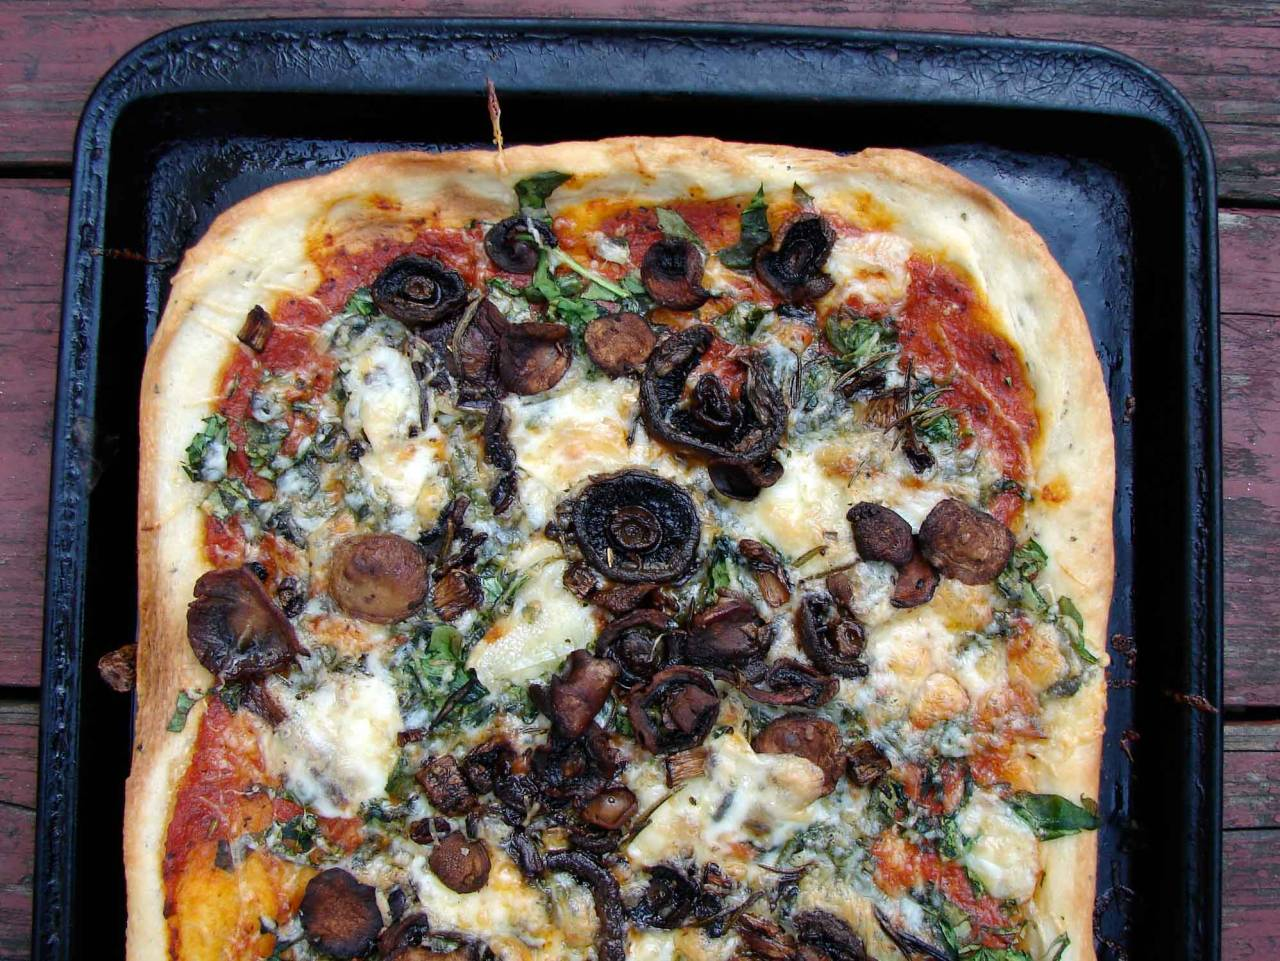 Pizza with Baby Spinach, Rosemary Roasted Mushrooms, and Brie